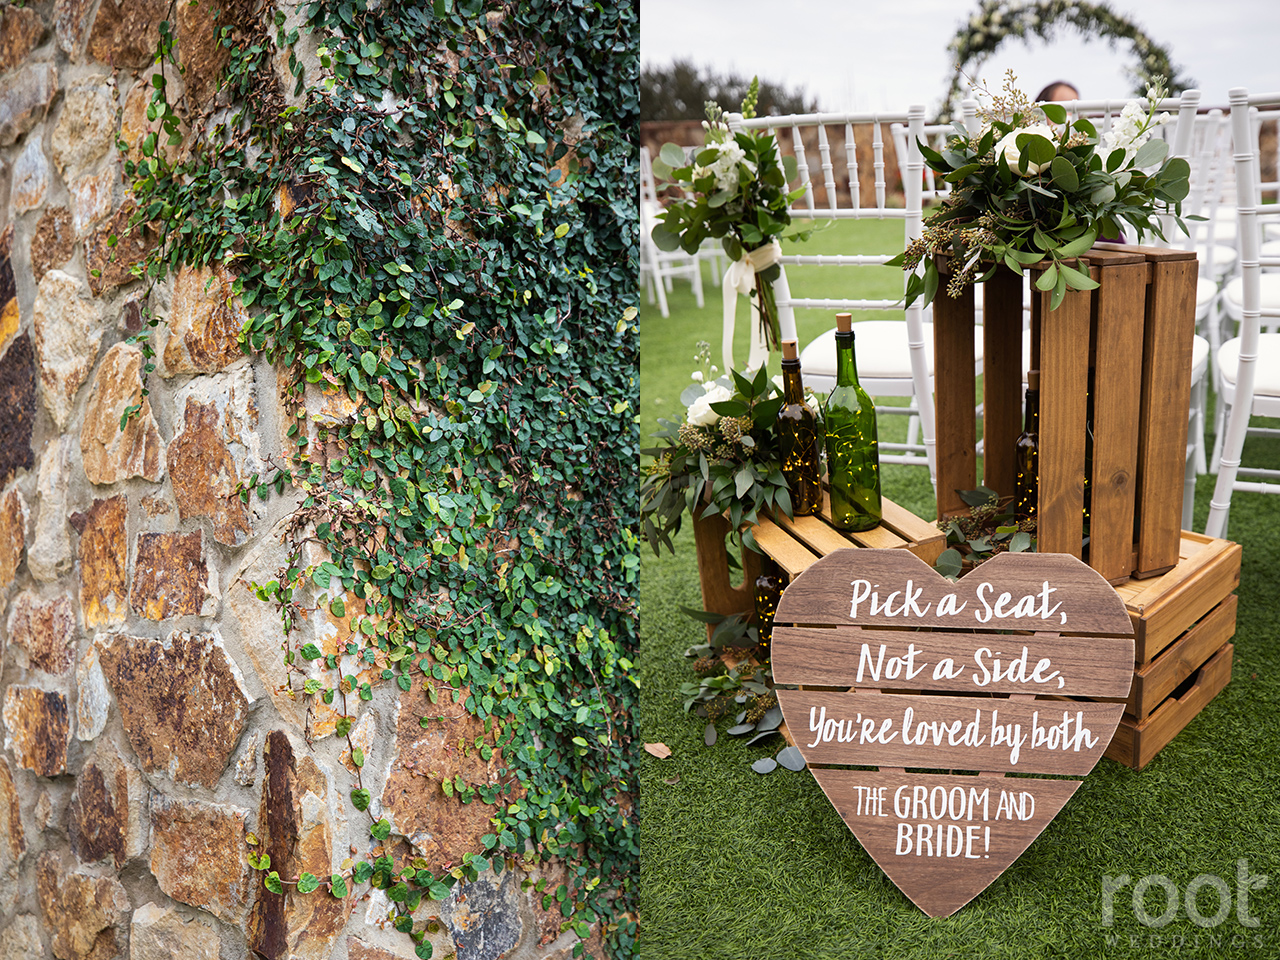 Pick a seat, not a side wedding ceremony sign